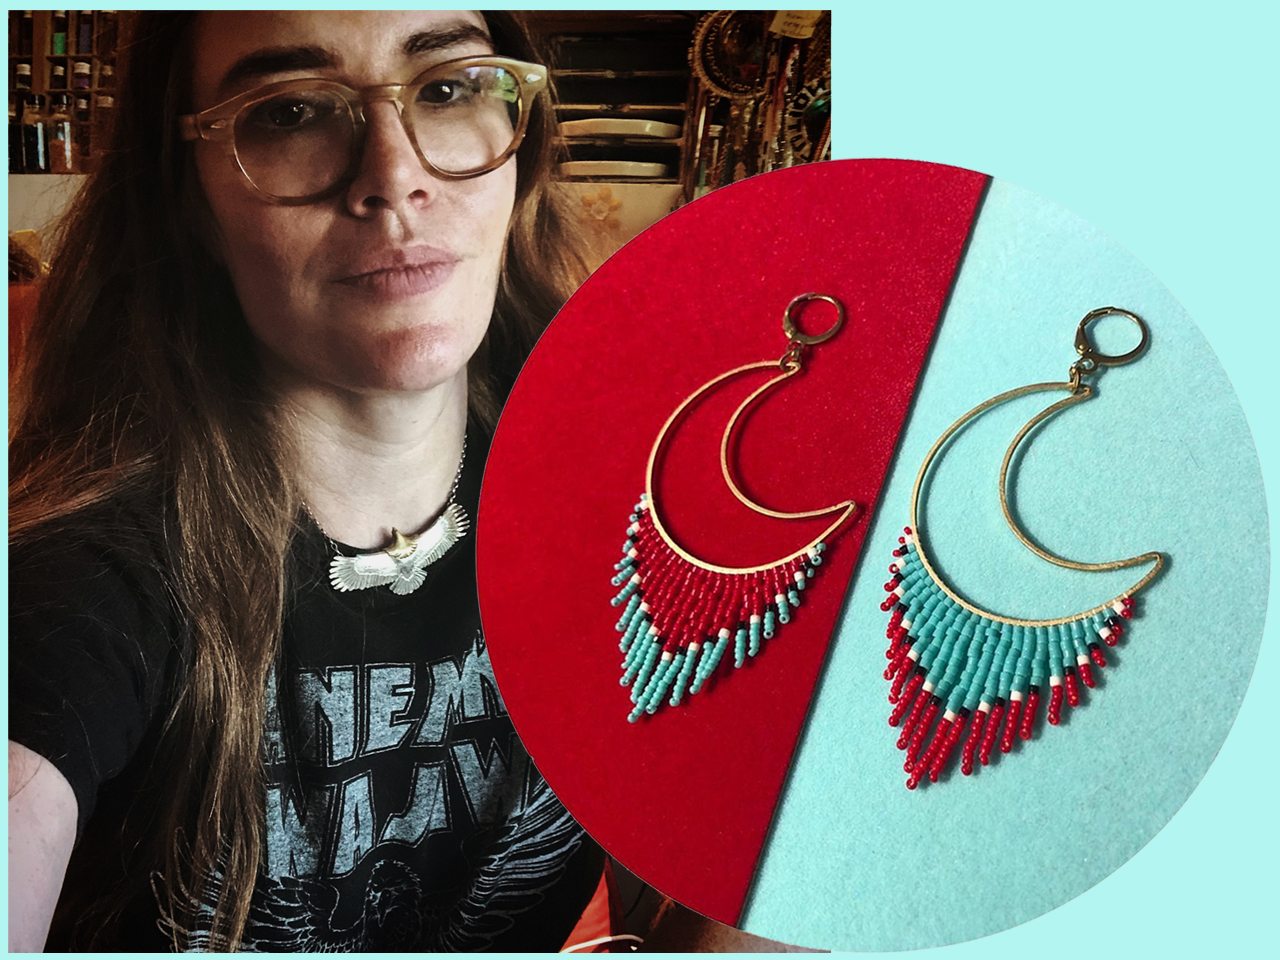 A photo of Krysta Furioso, and a pair of her shooting moon earrings.